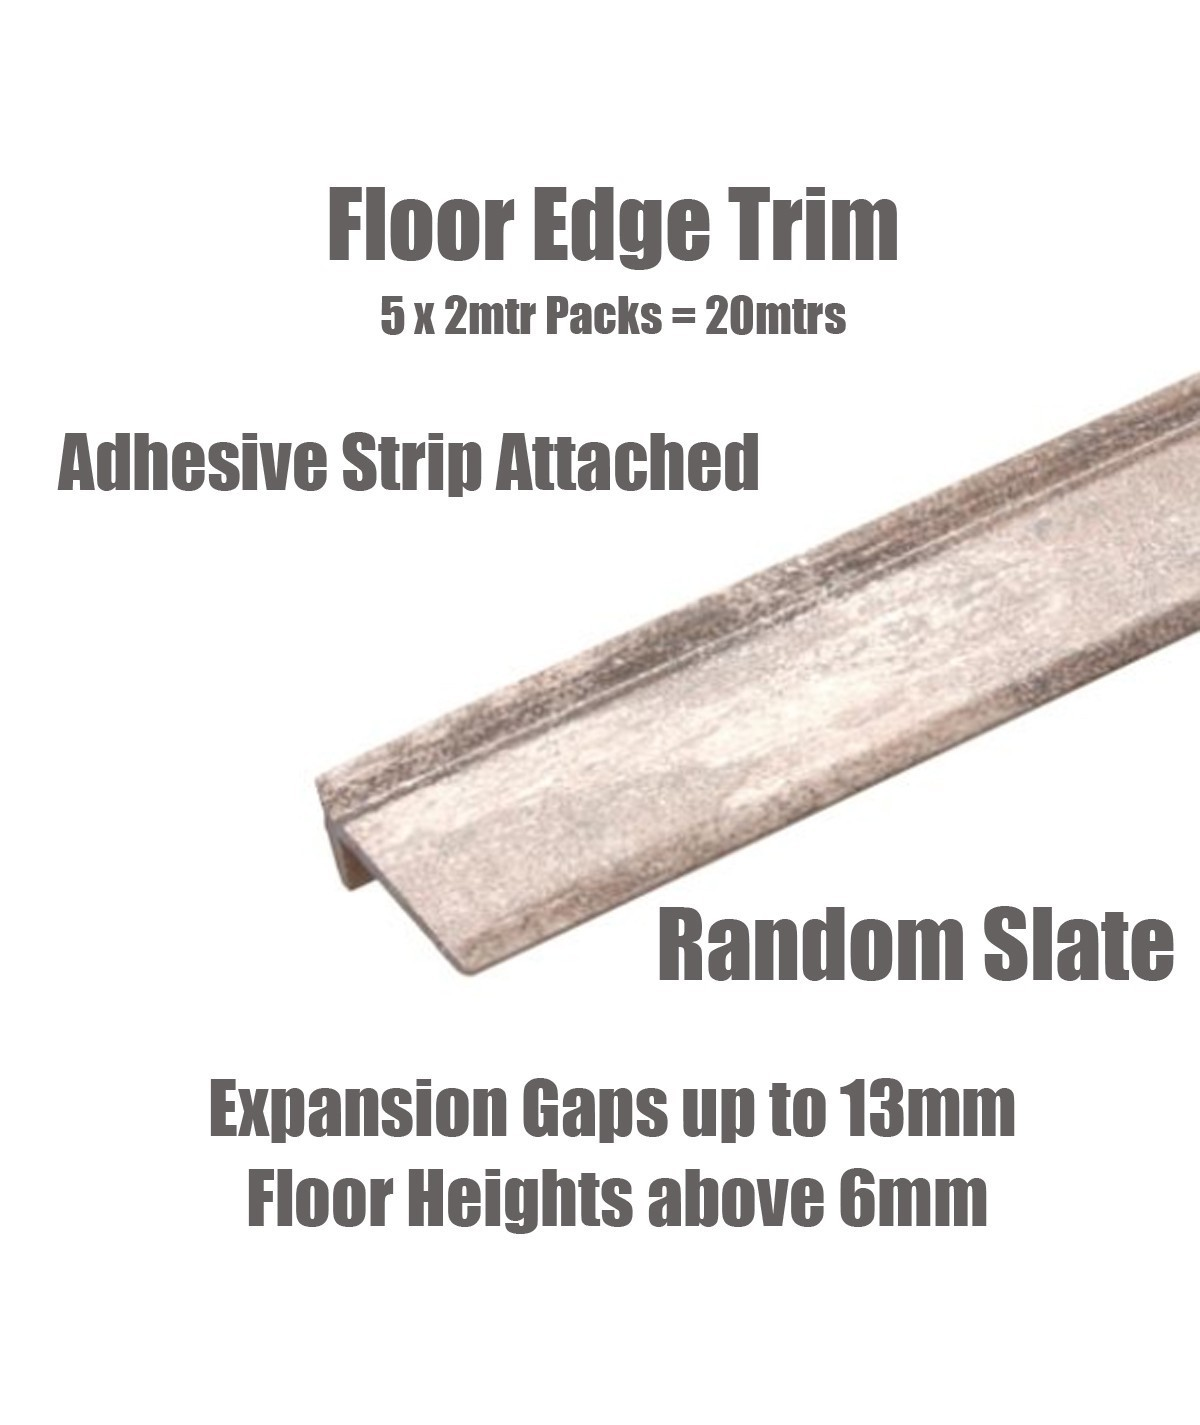 Random Slate Floor Edge Adhesive Trim 10 x 2Mtr Lengths Bridge Gap Between Floor and Skirting